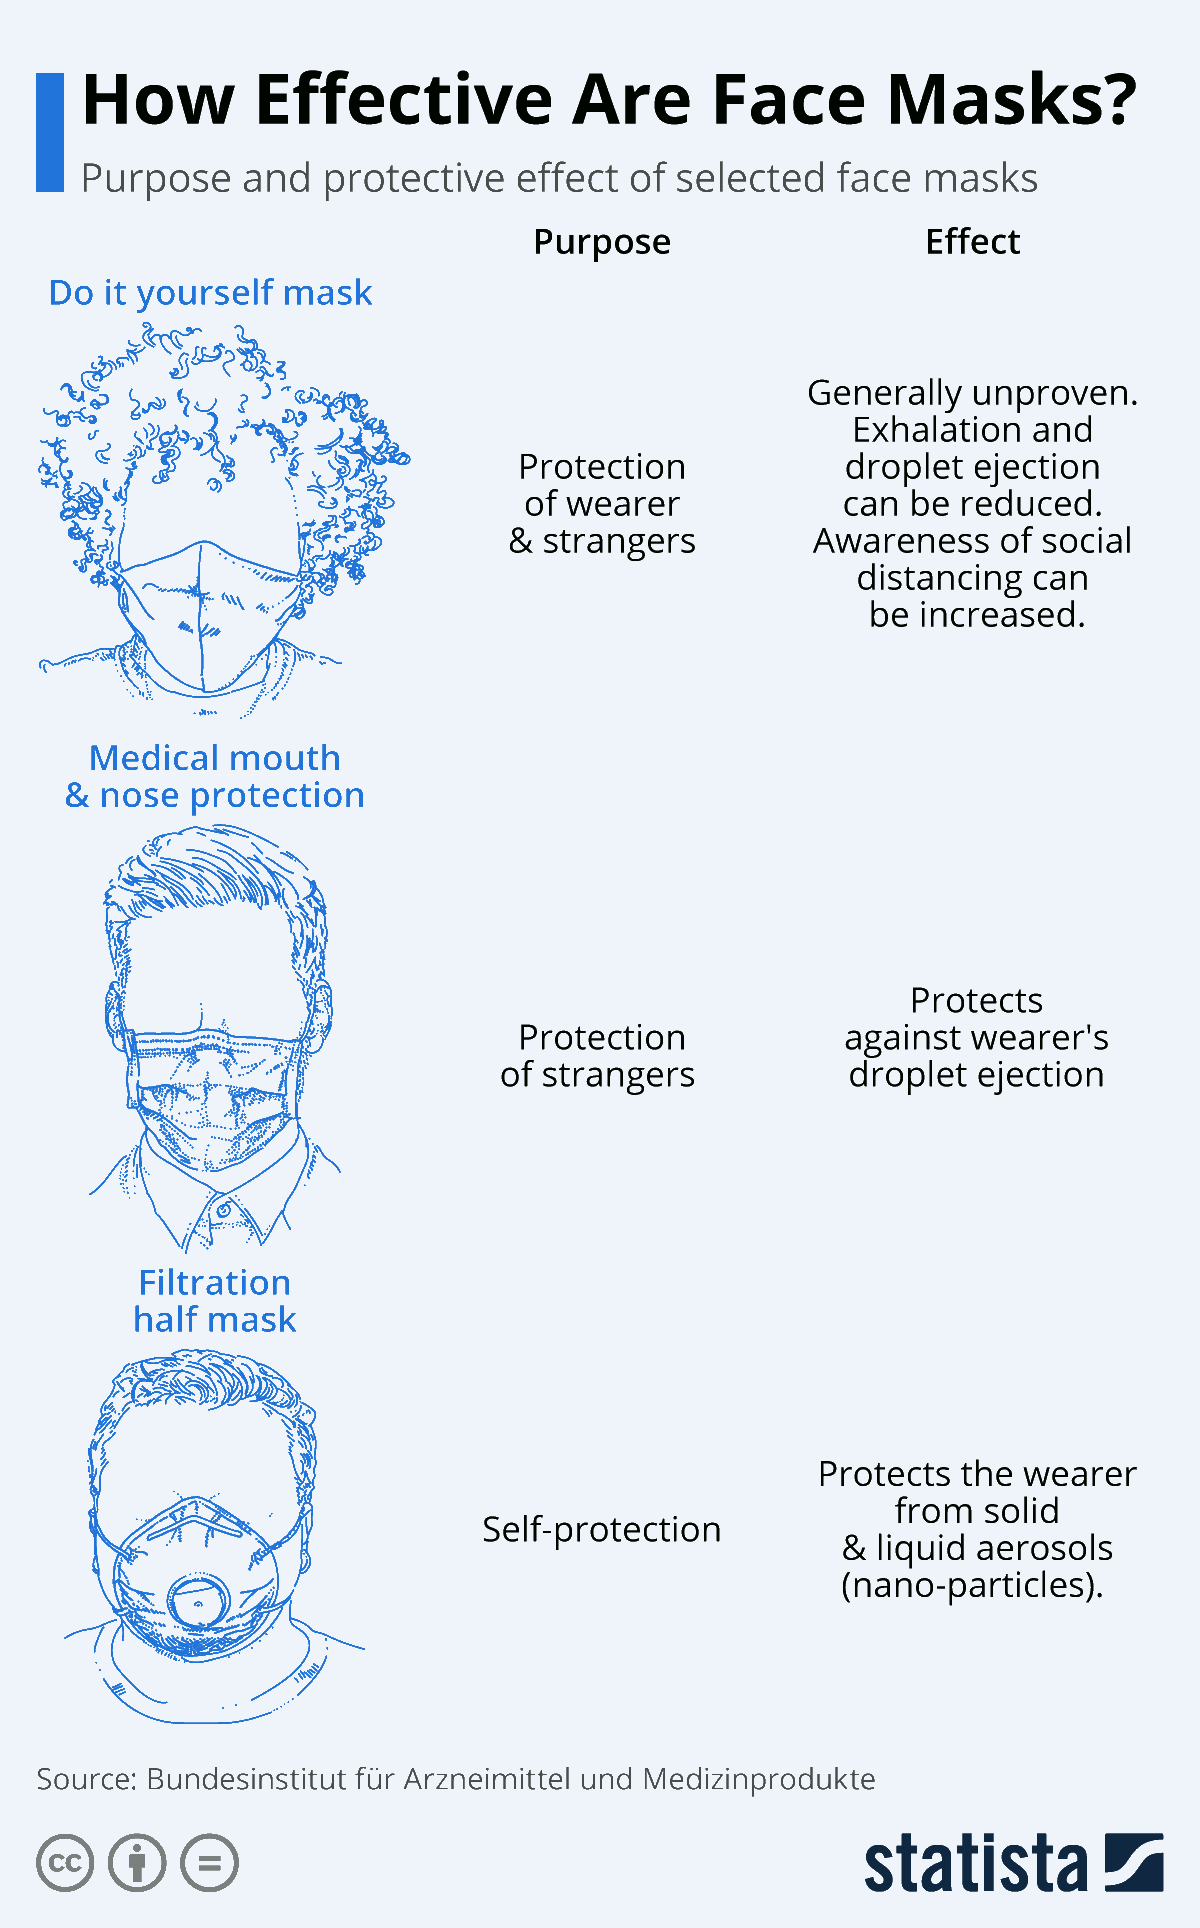 How Effective Are Face Masks Infographic